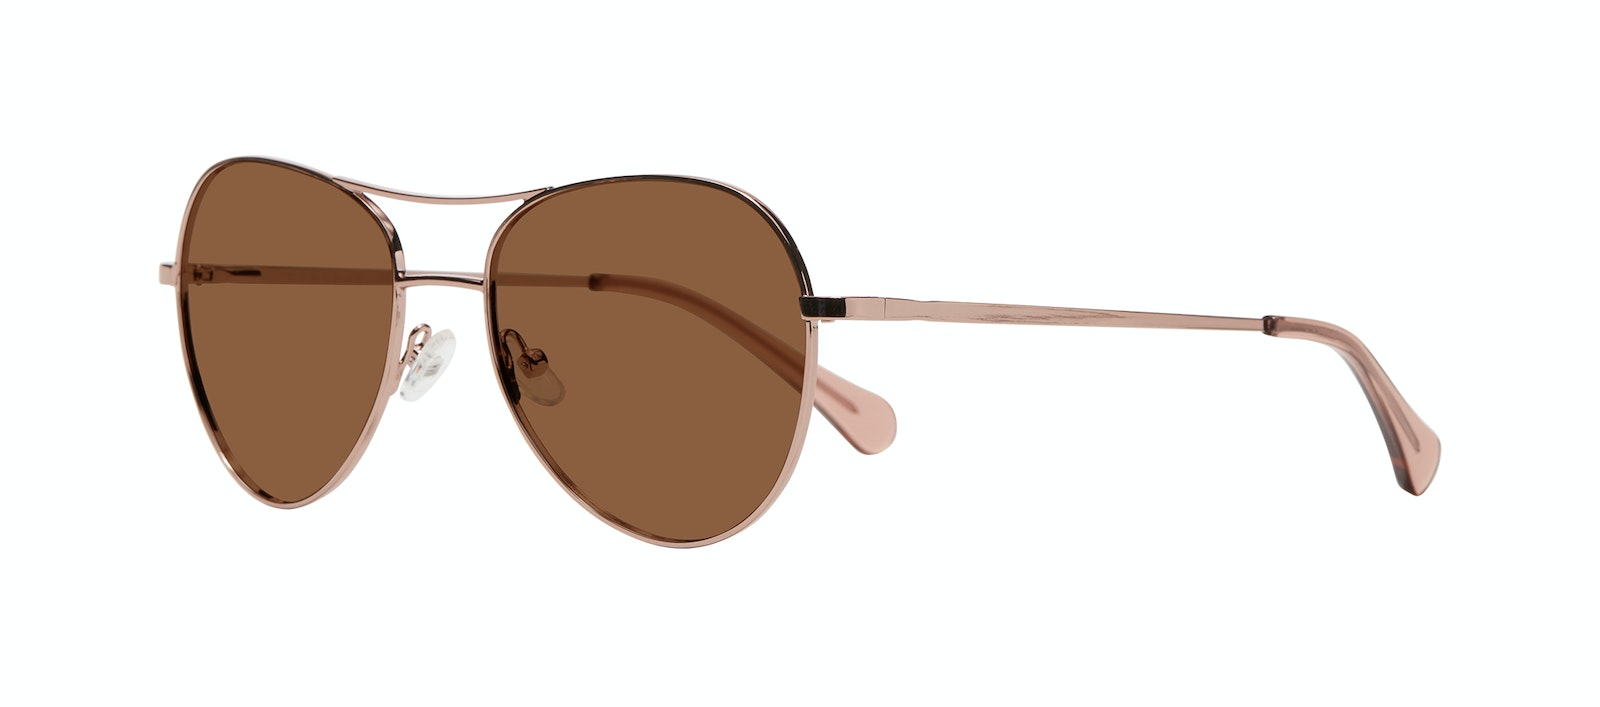 Affordable Fashion Glasses Aviator Sunglasses Women Want Rose Gold Tilt